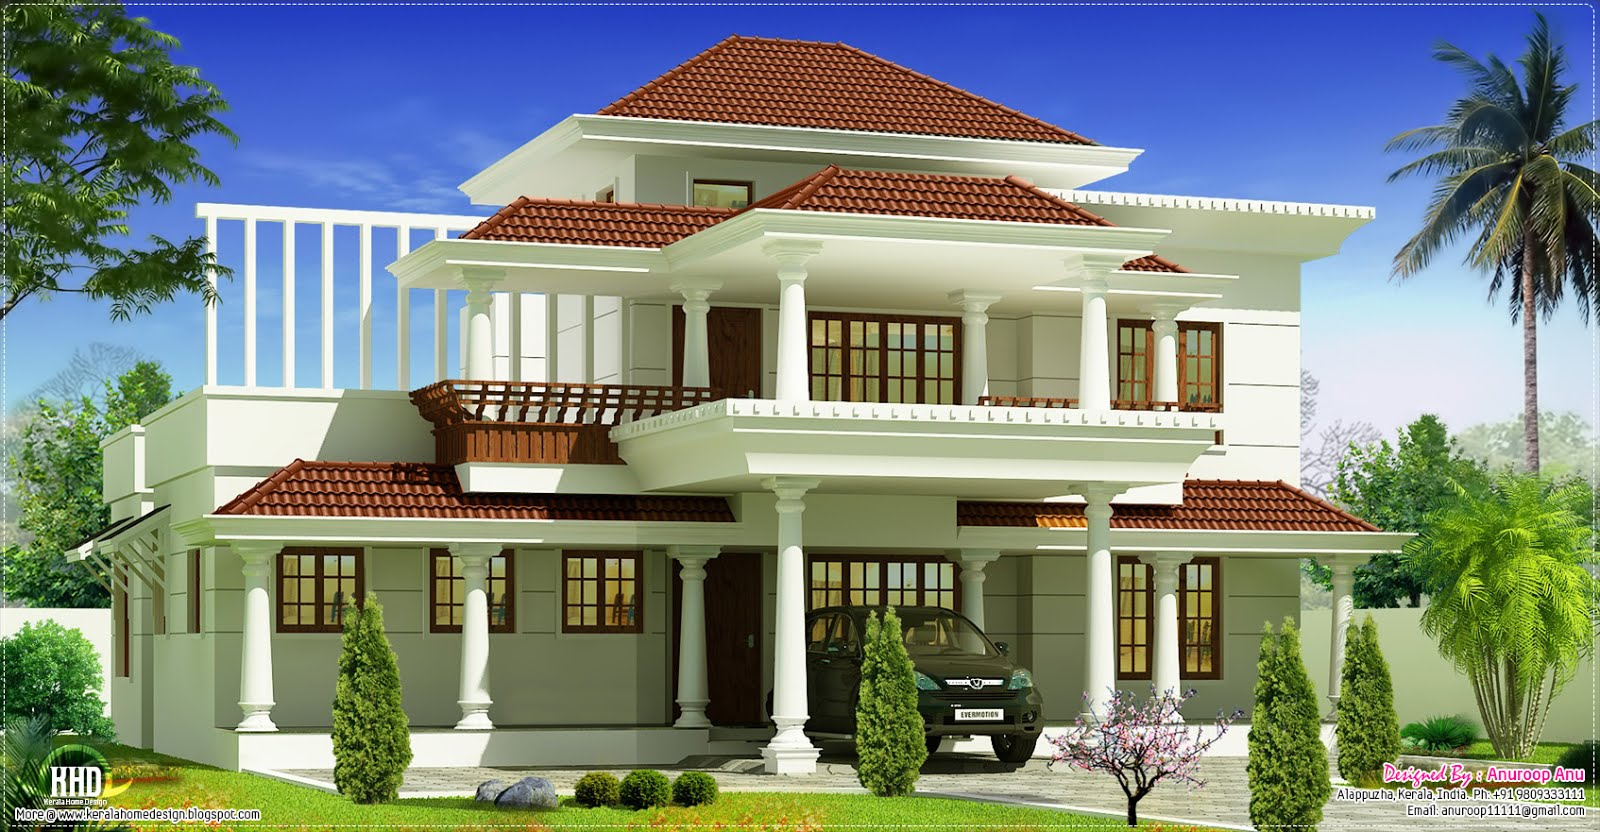 January 2013 kerala home design and floor plans for Kerala house designs and floor plans 2016